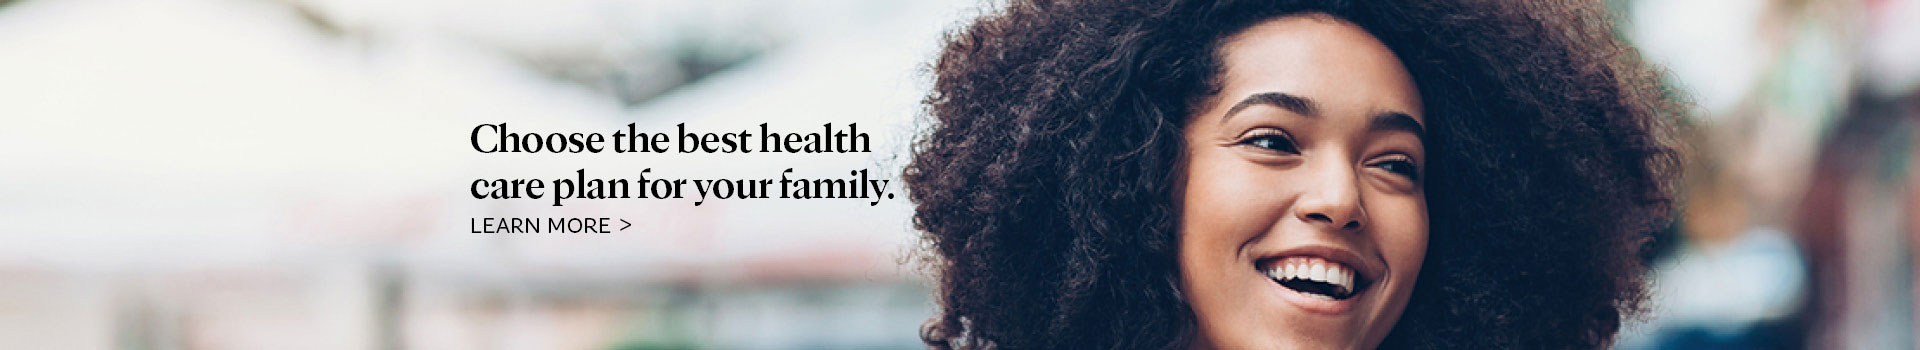 Choose the best health care plan for your family.